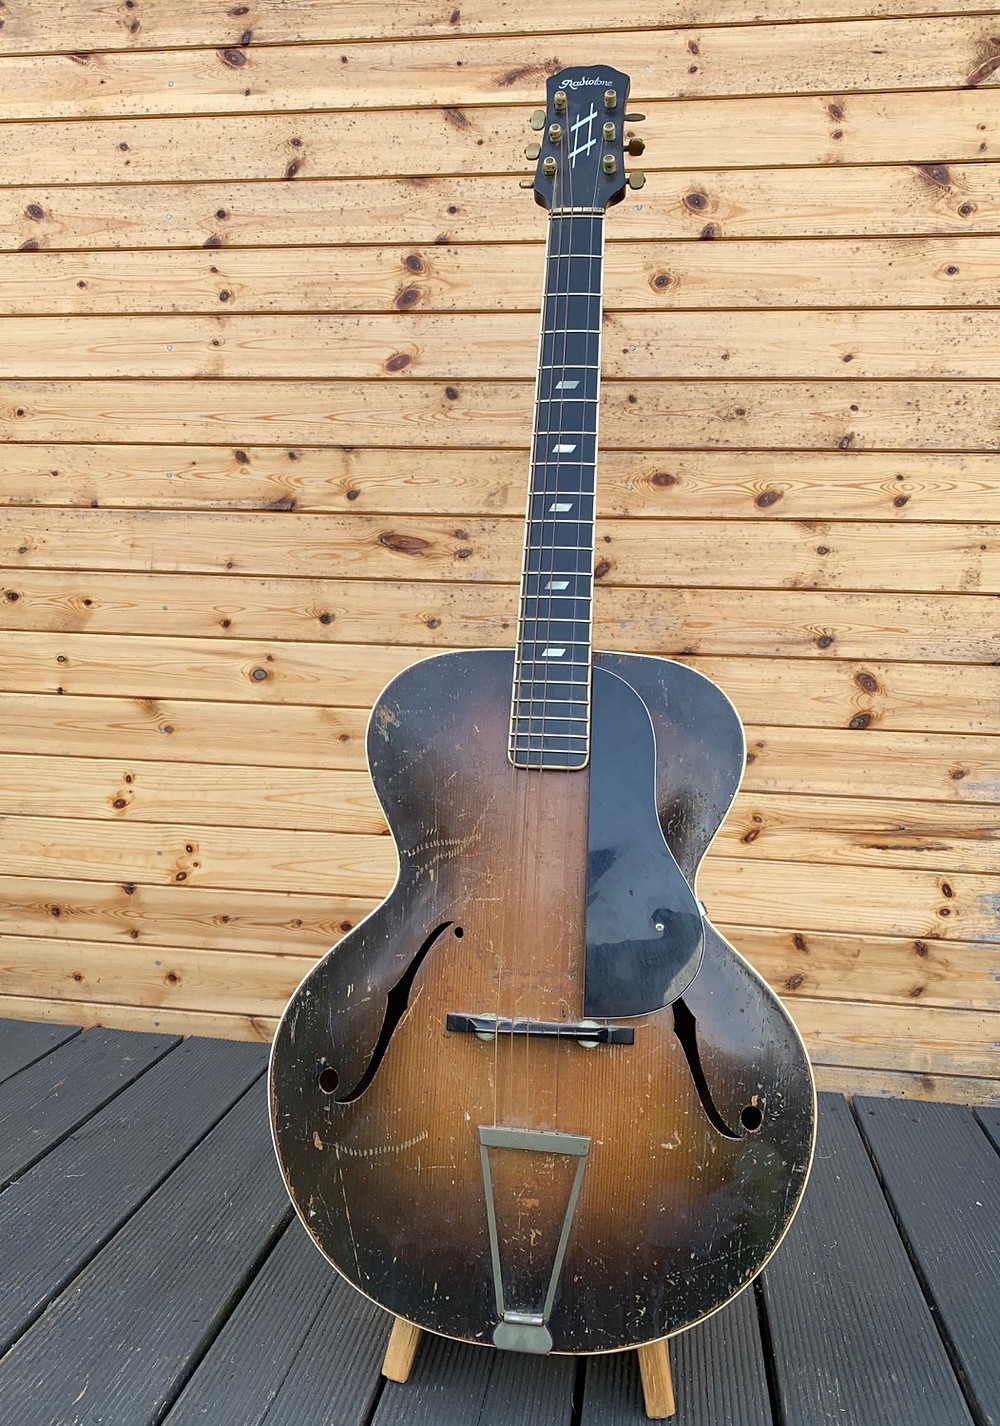 A playworn Radiotone Archtop at the Malone Guitars workshop, prior to restoration